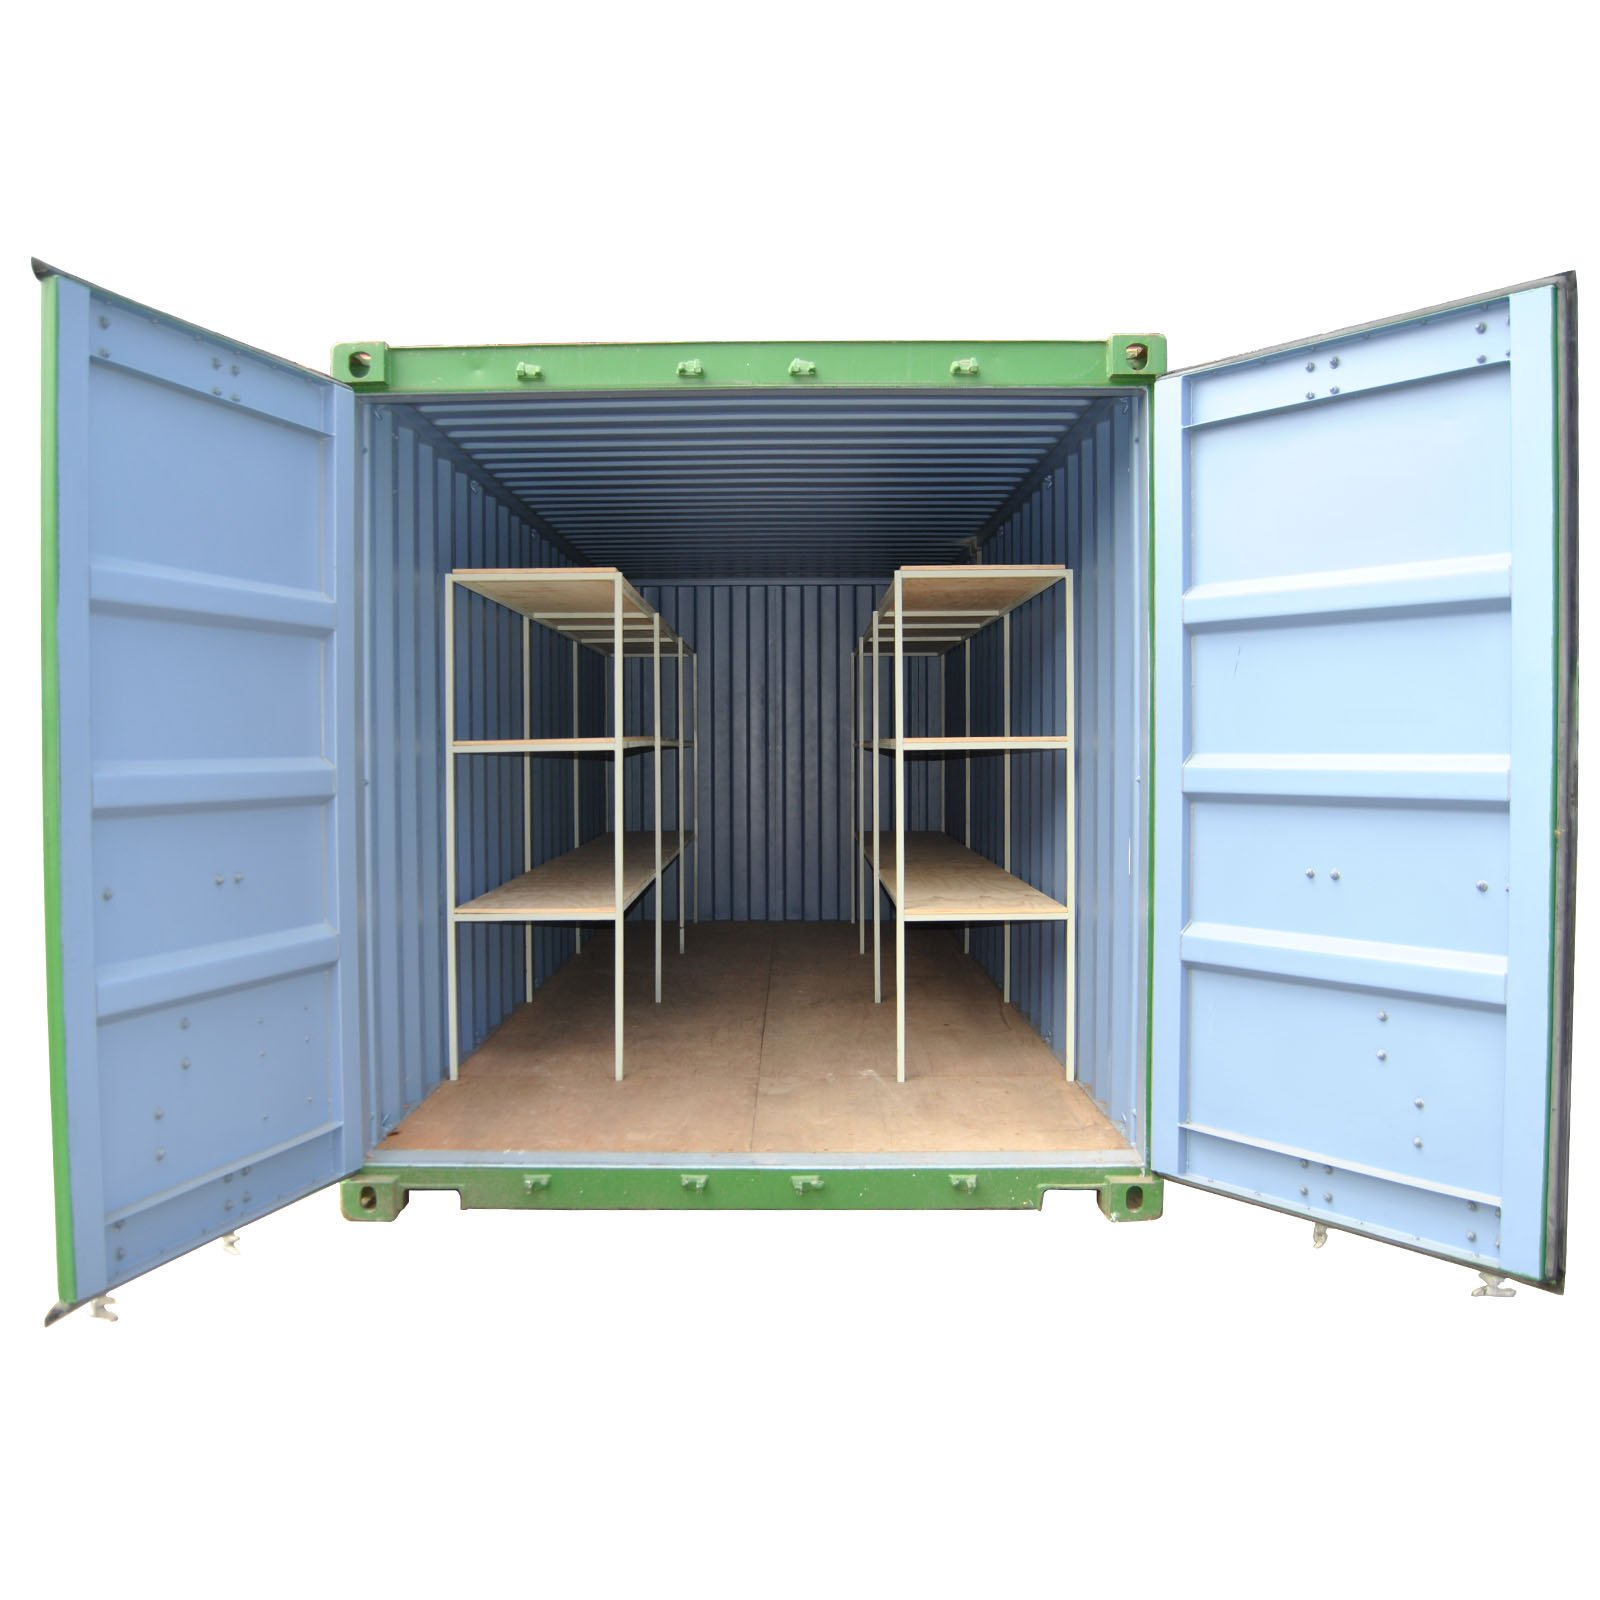 Steel Storage Containers Buy Or Rent Bellenewscom